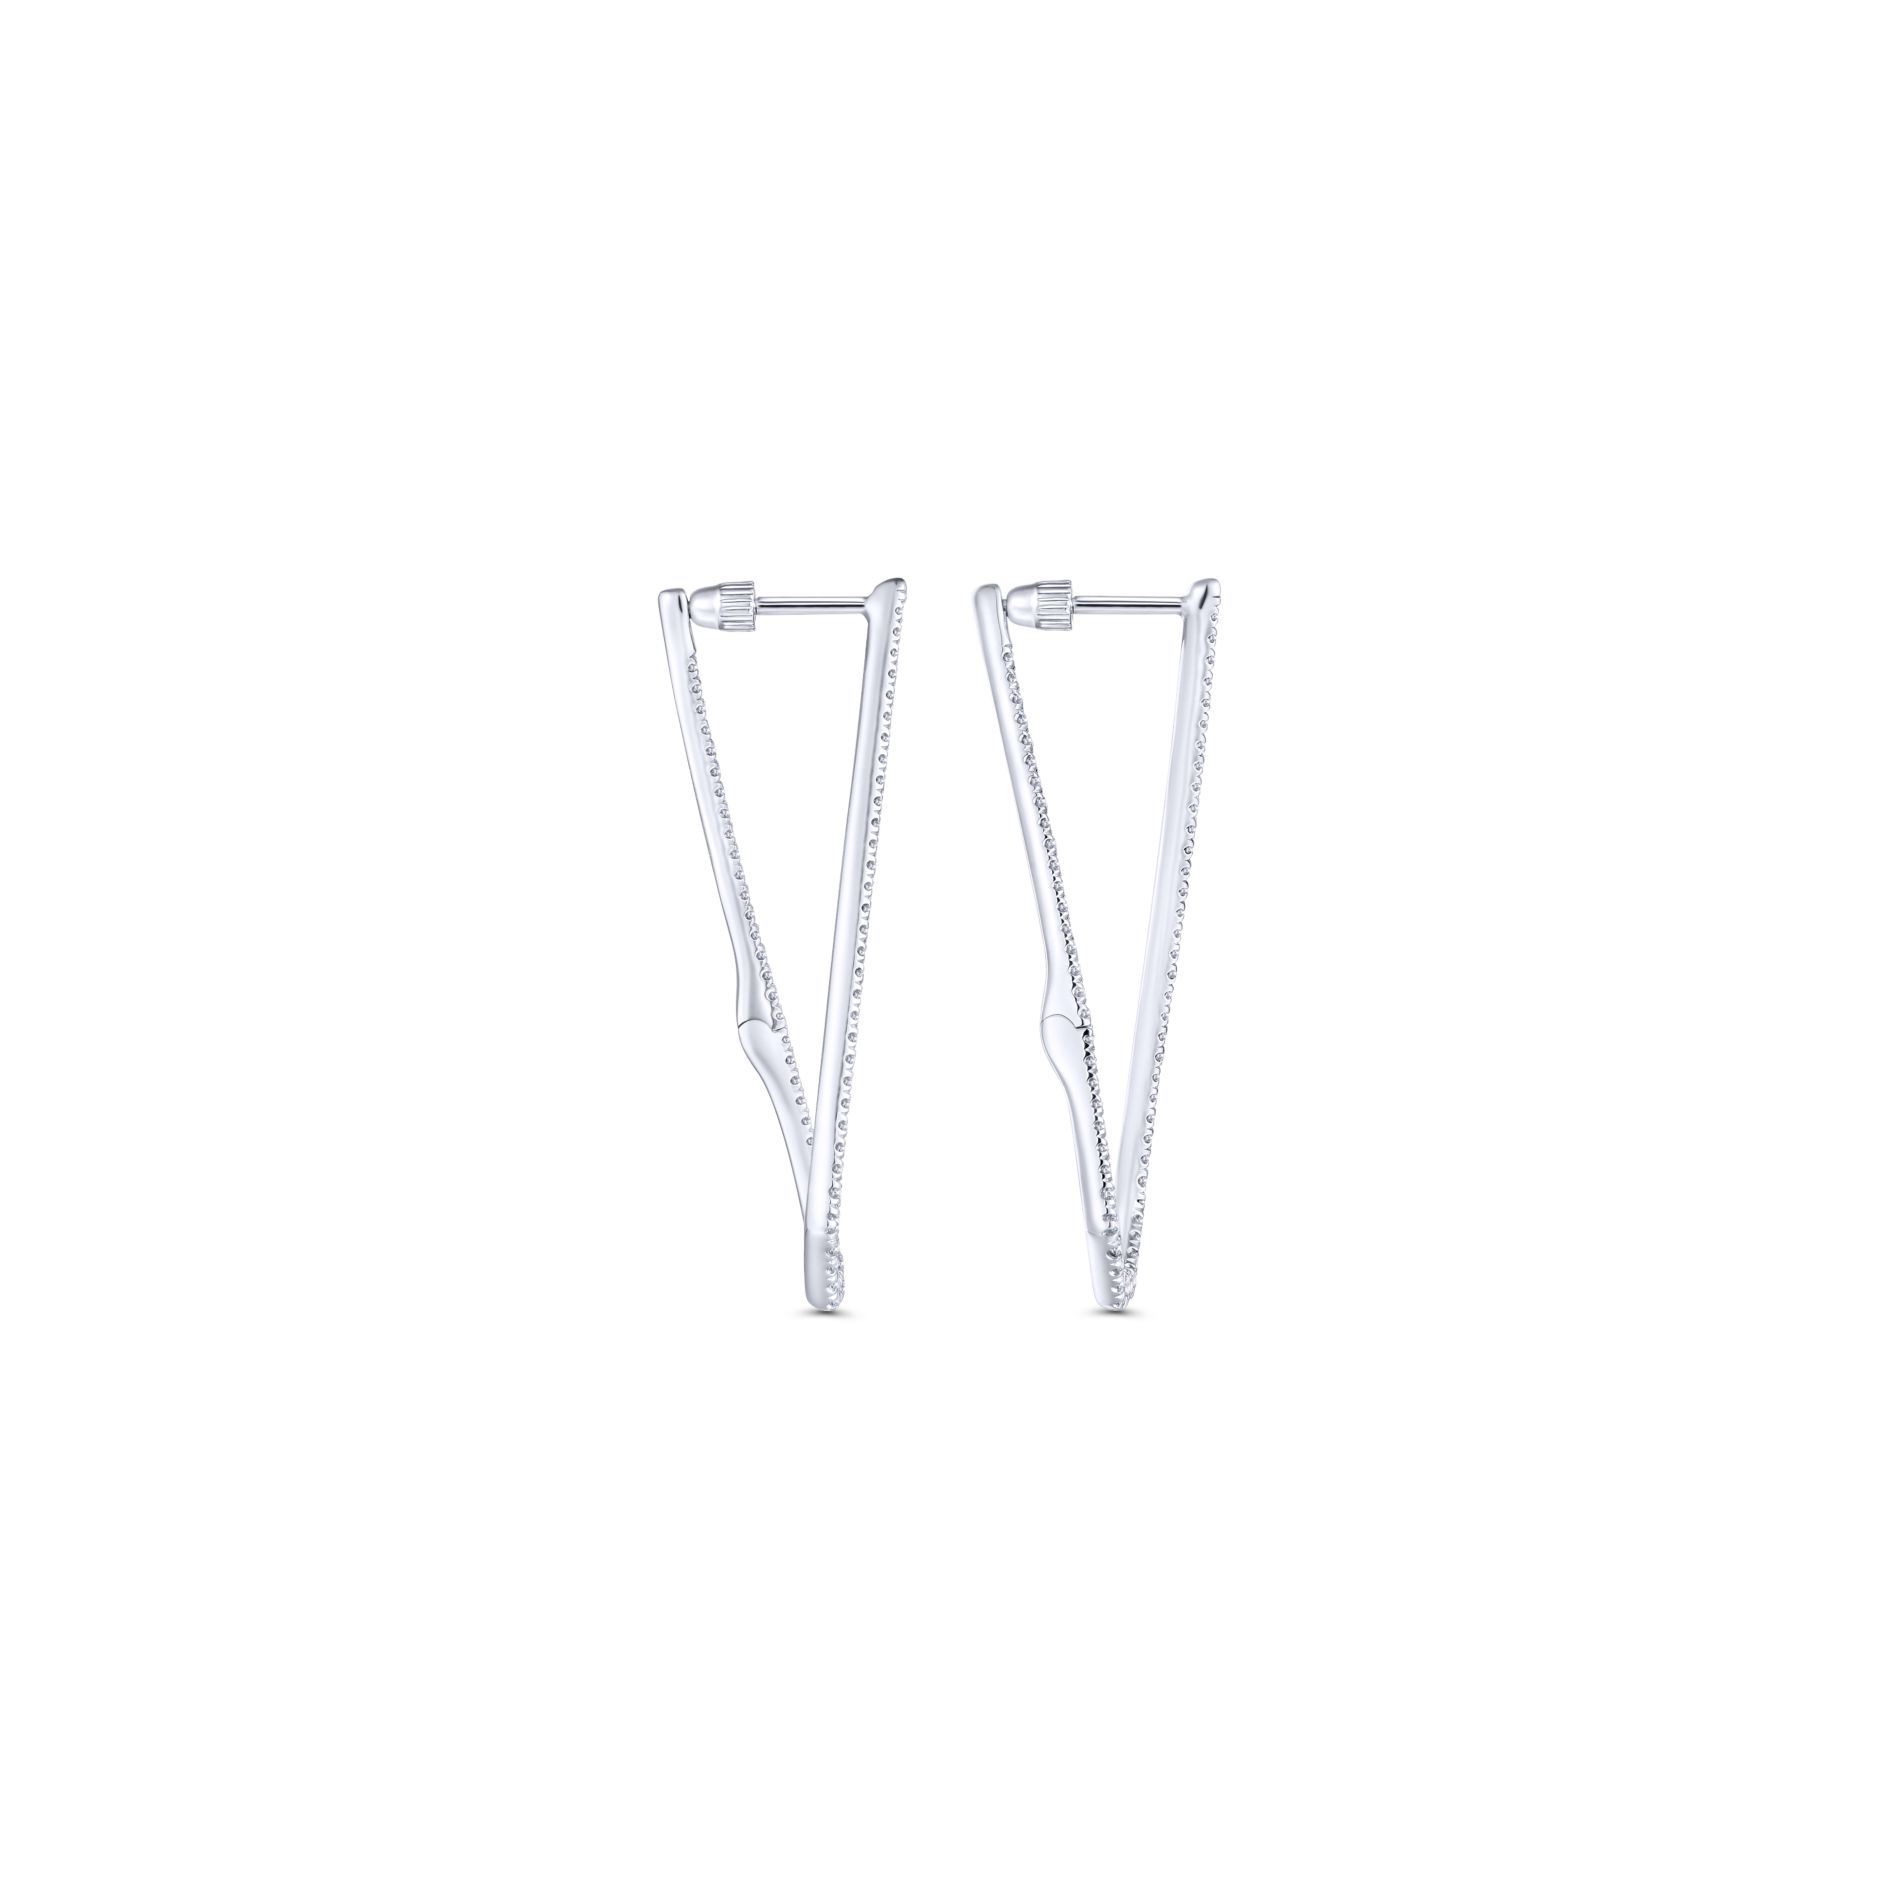 Earrings - INTRICARTE DIAMOND HOOP EARRINGS - image #2